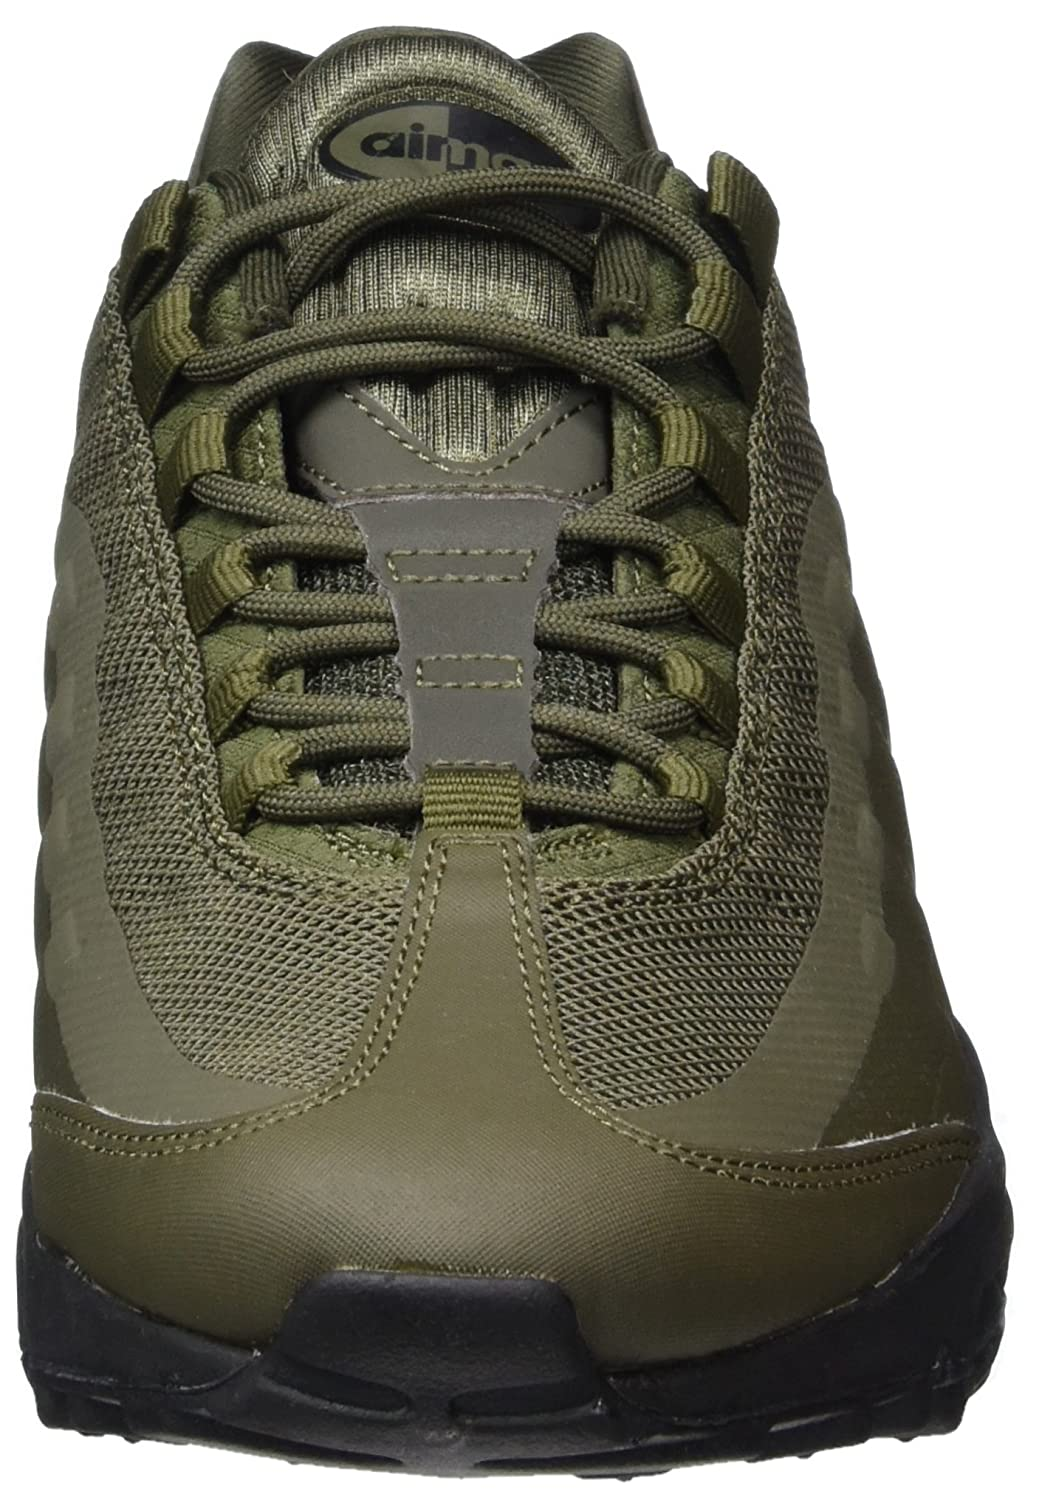 reputable site 121e5 61c86 Nike Men s s Air Max 95 Ultra Essential Gymnastics Shoes Green (Cargo Khaki  Black), 7.5 UK  Amazon.co.uk  Shoes   Bags